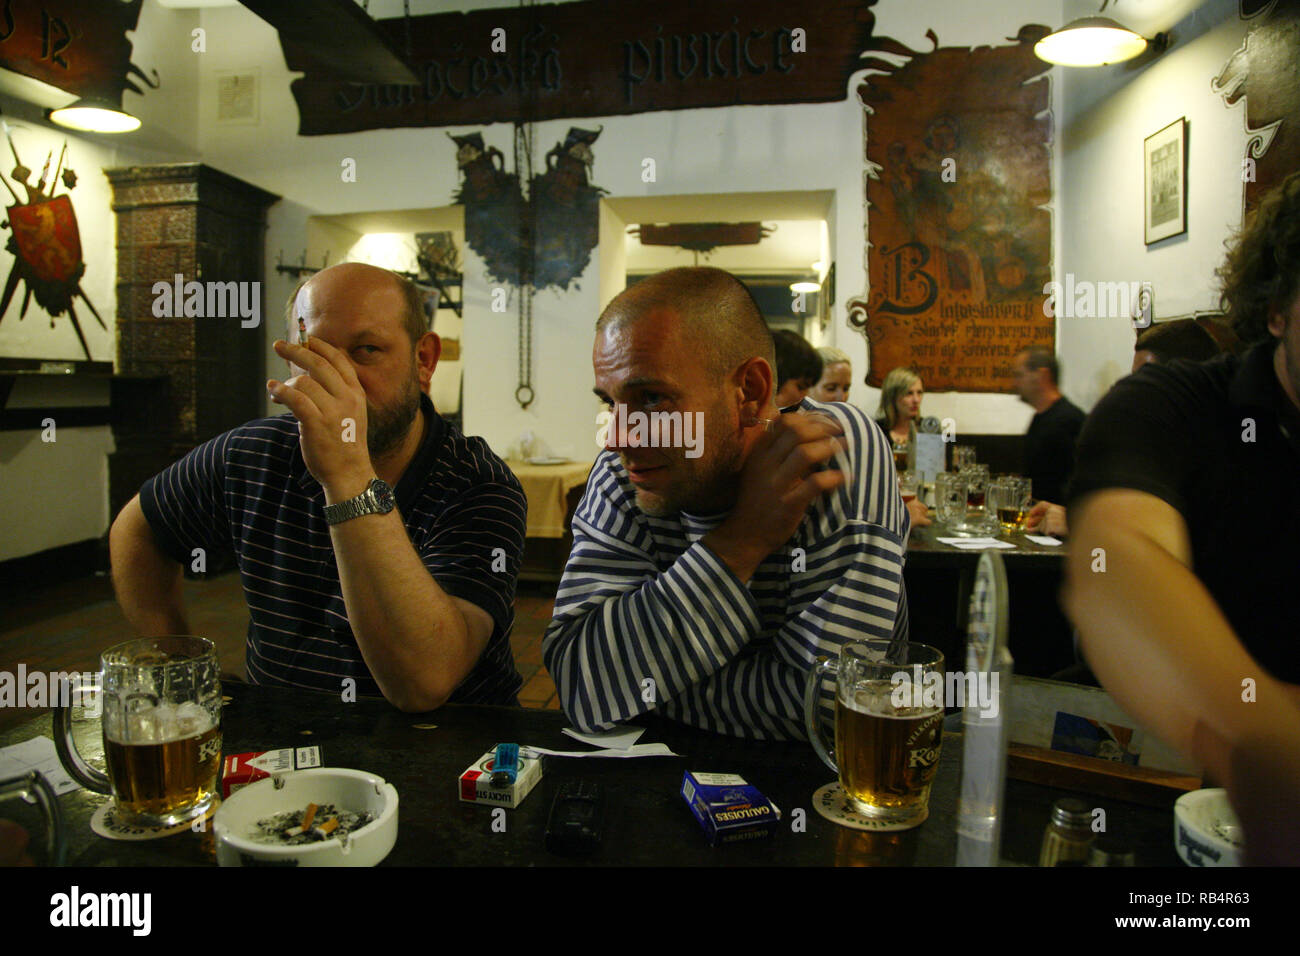 A July 25, 2007, evening at the legendary Prague pub called U Cerneho vola (the Black Ox pub) at Loreta Square in Hradcany, the Castle District of Pra - Stock Image